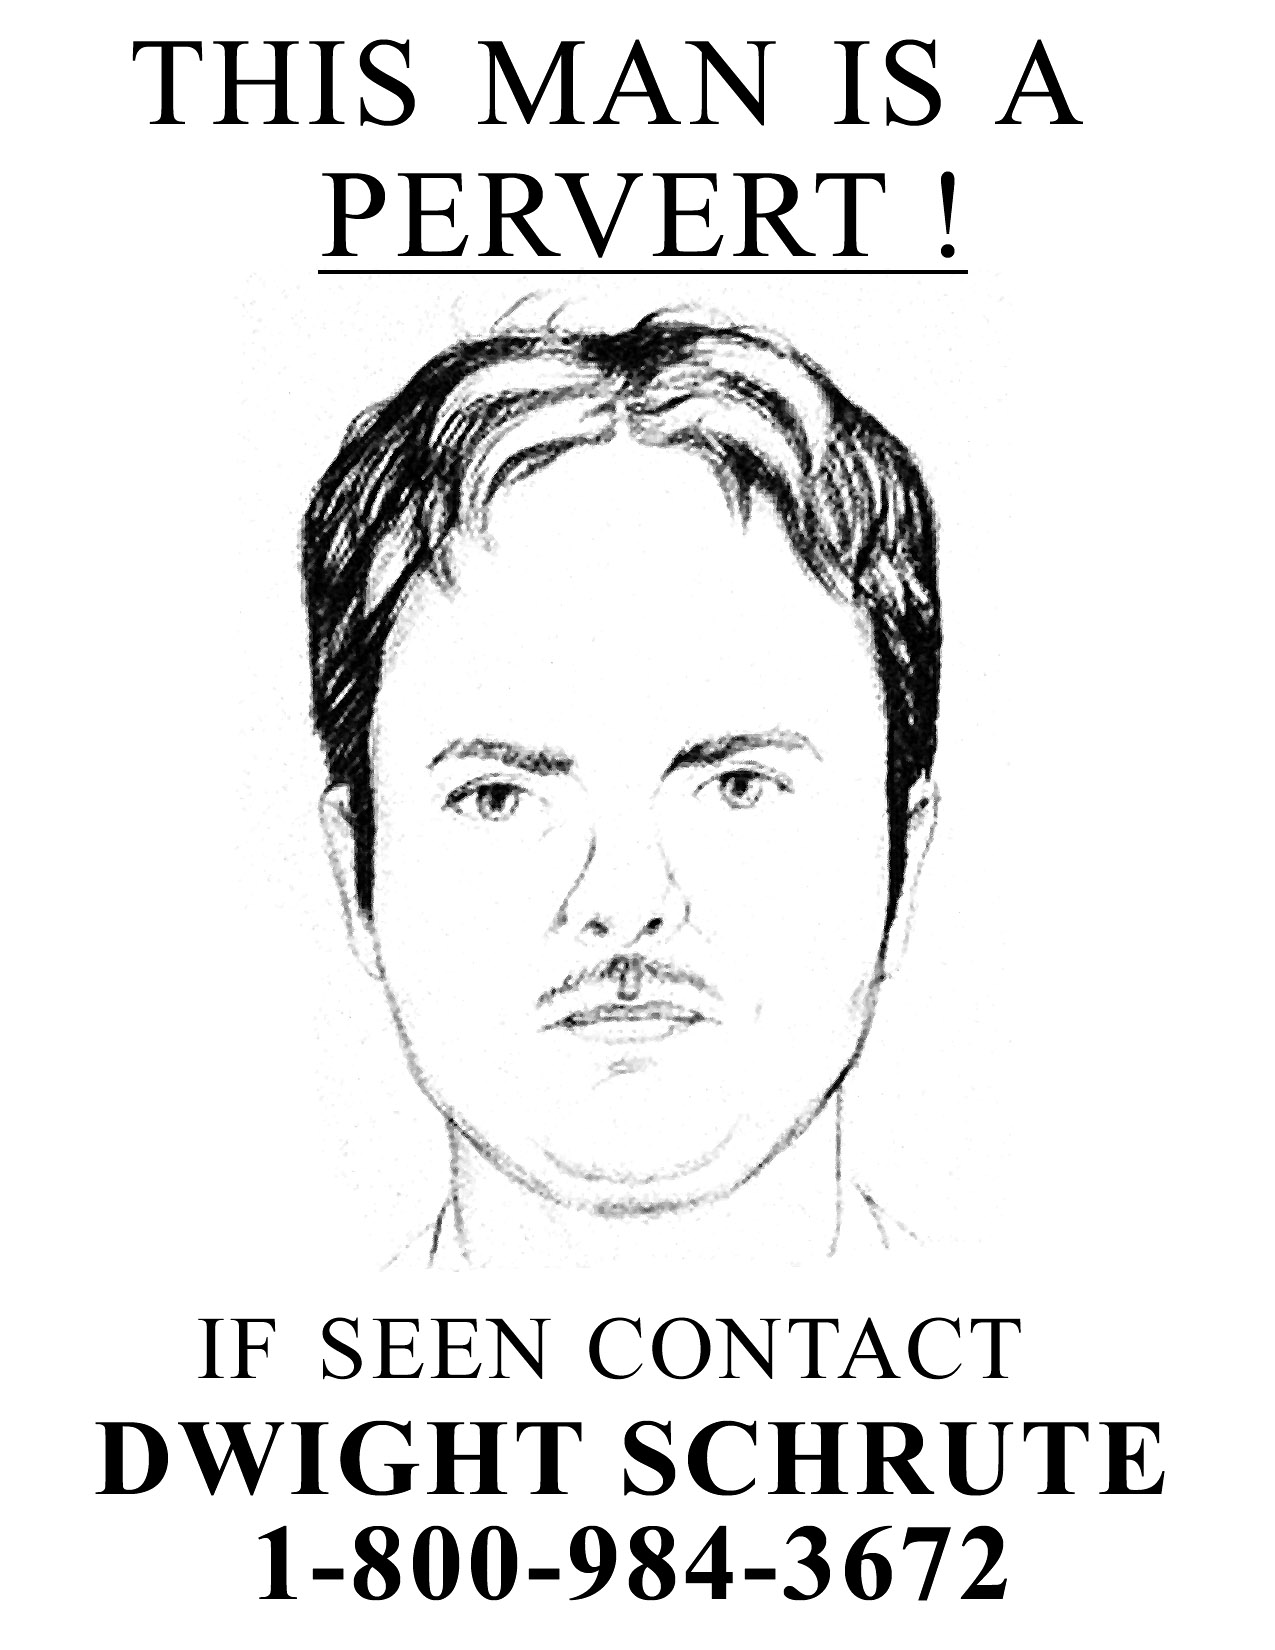 The office posters Michael Scarn The Hathor Legacy This Man Is Pervert Dwight Schrute Photo 400254 Fanpop